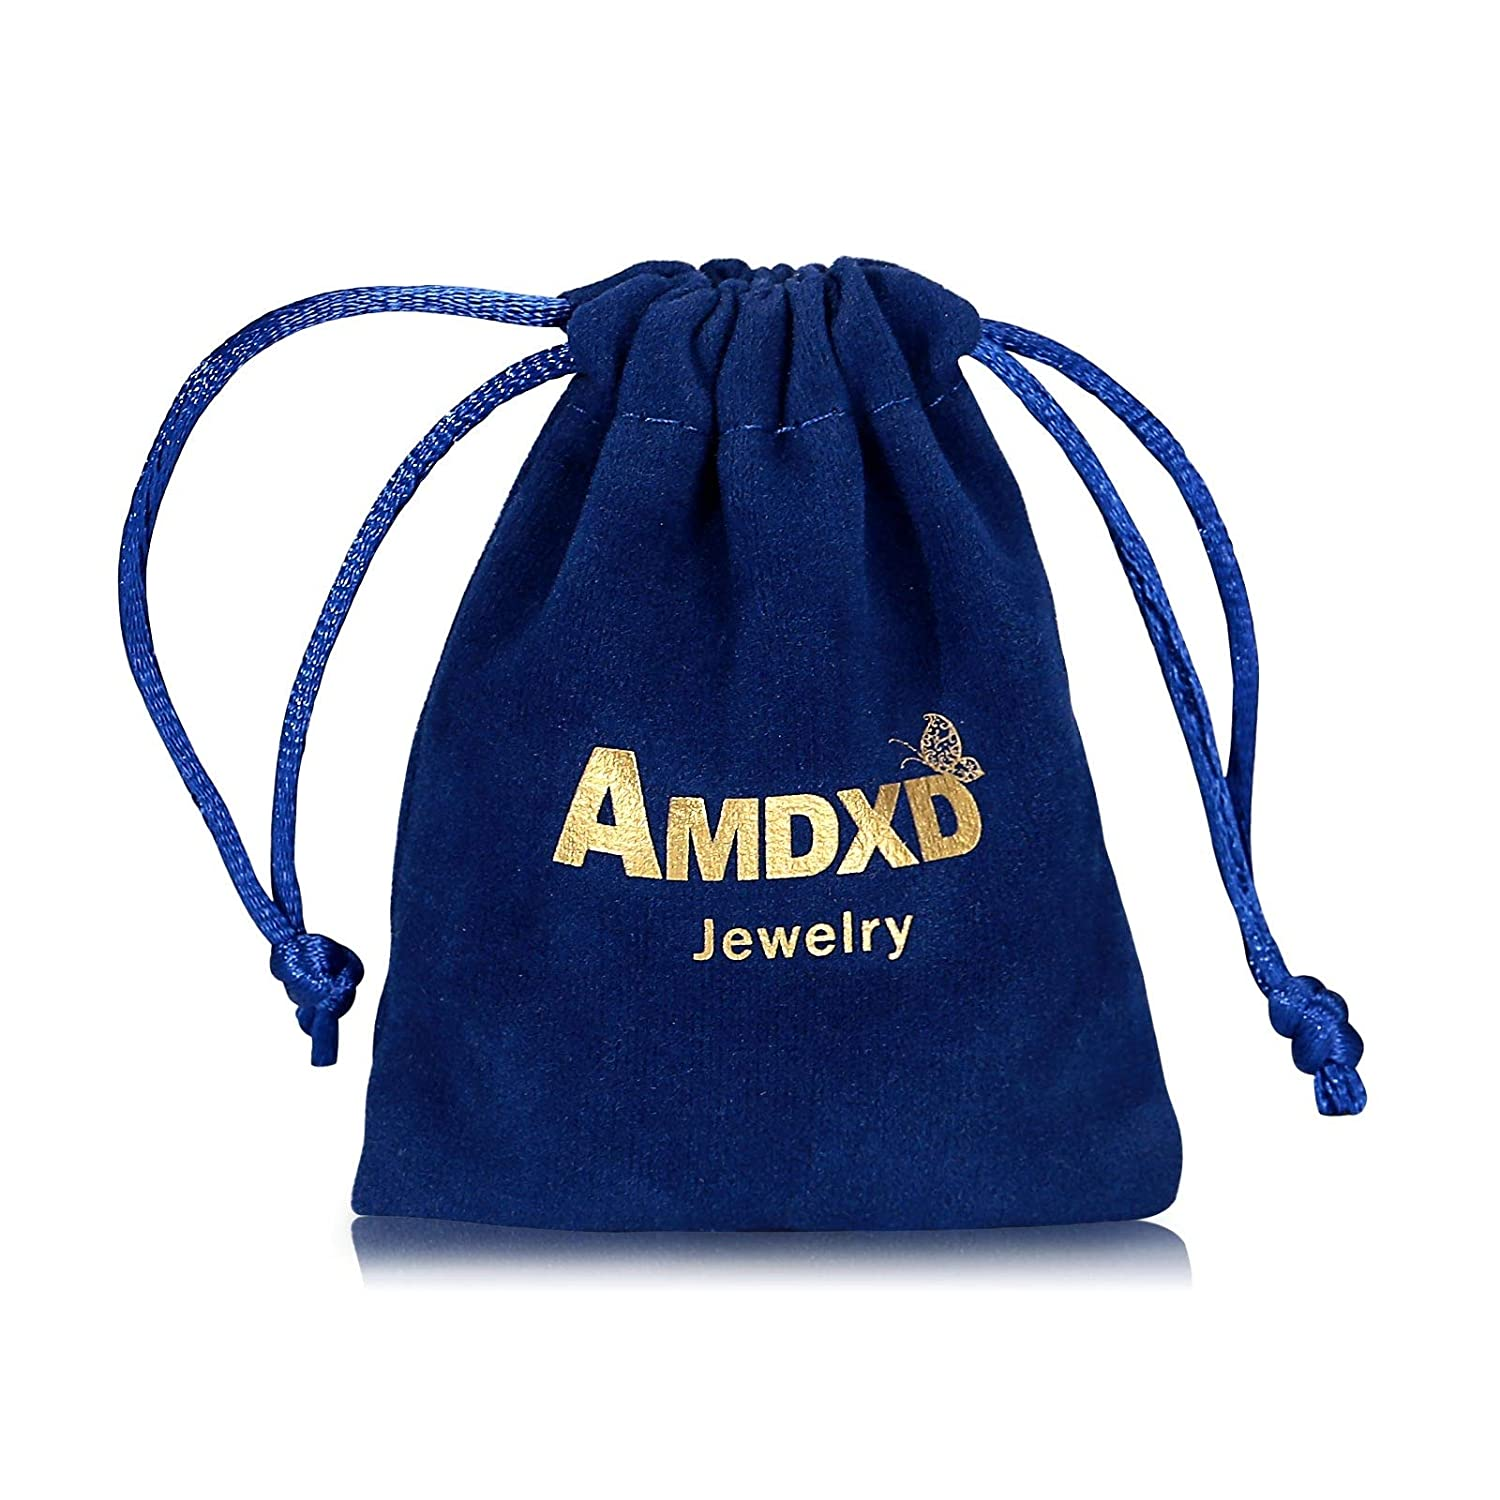 AMDXD Jewelry Chain Necklace for Women Wool Thread Chain Necklaces Punk Necklaces for Women